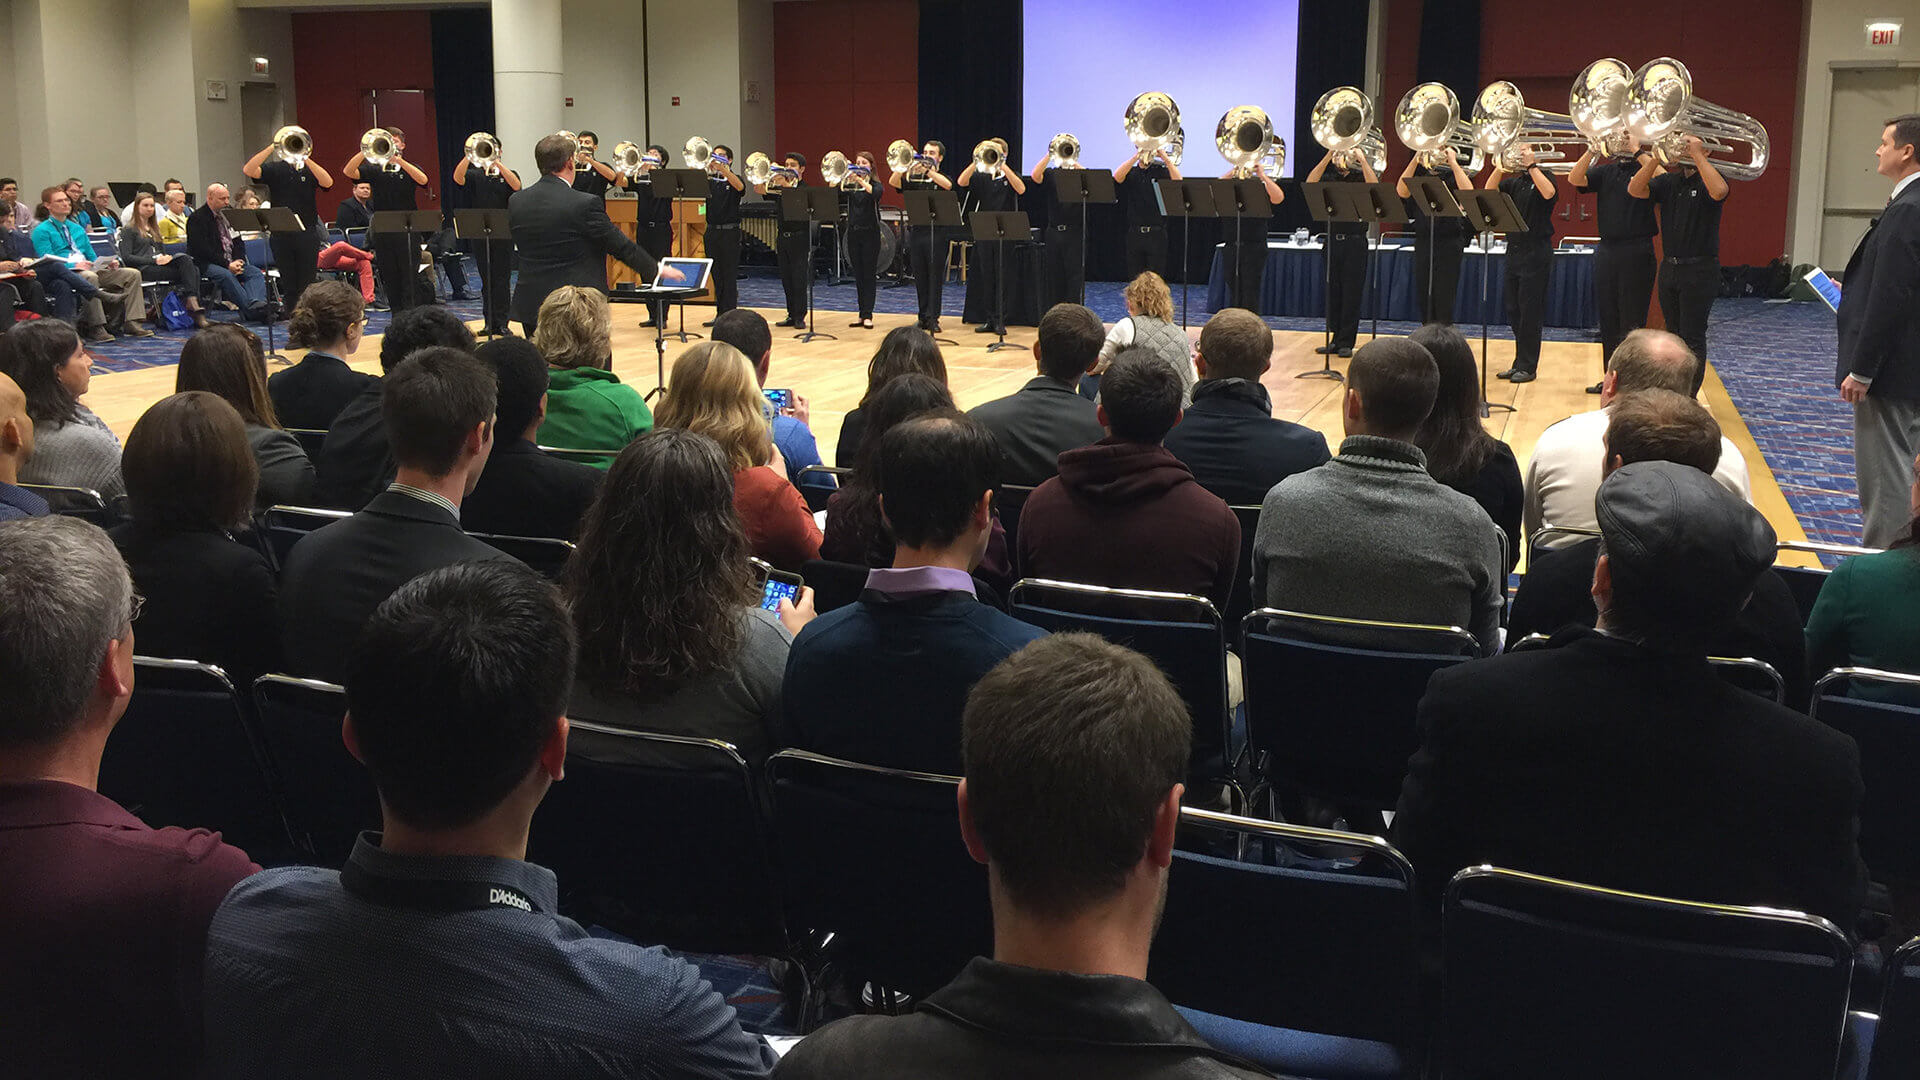 Regiment brass lays the 'bottom line' at international music conference